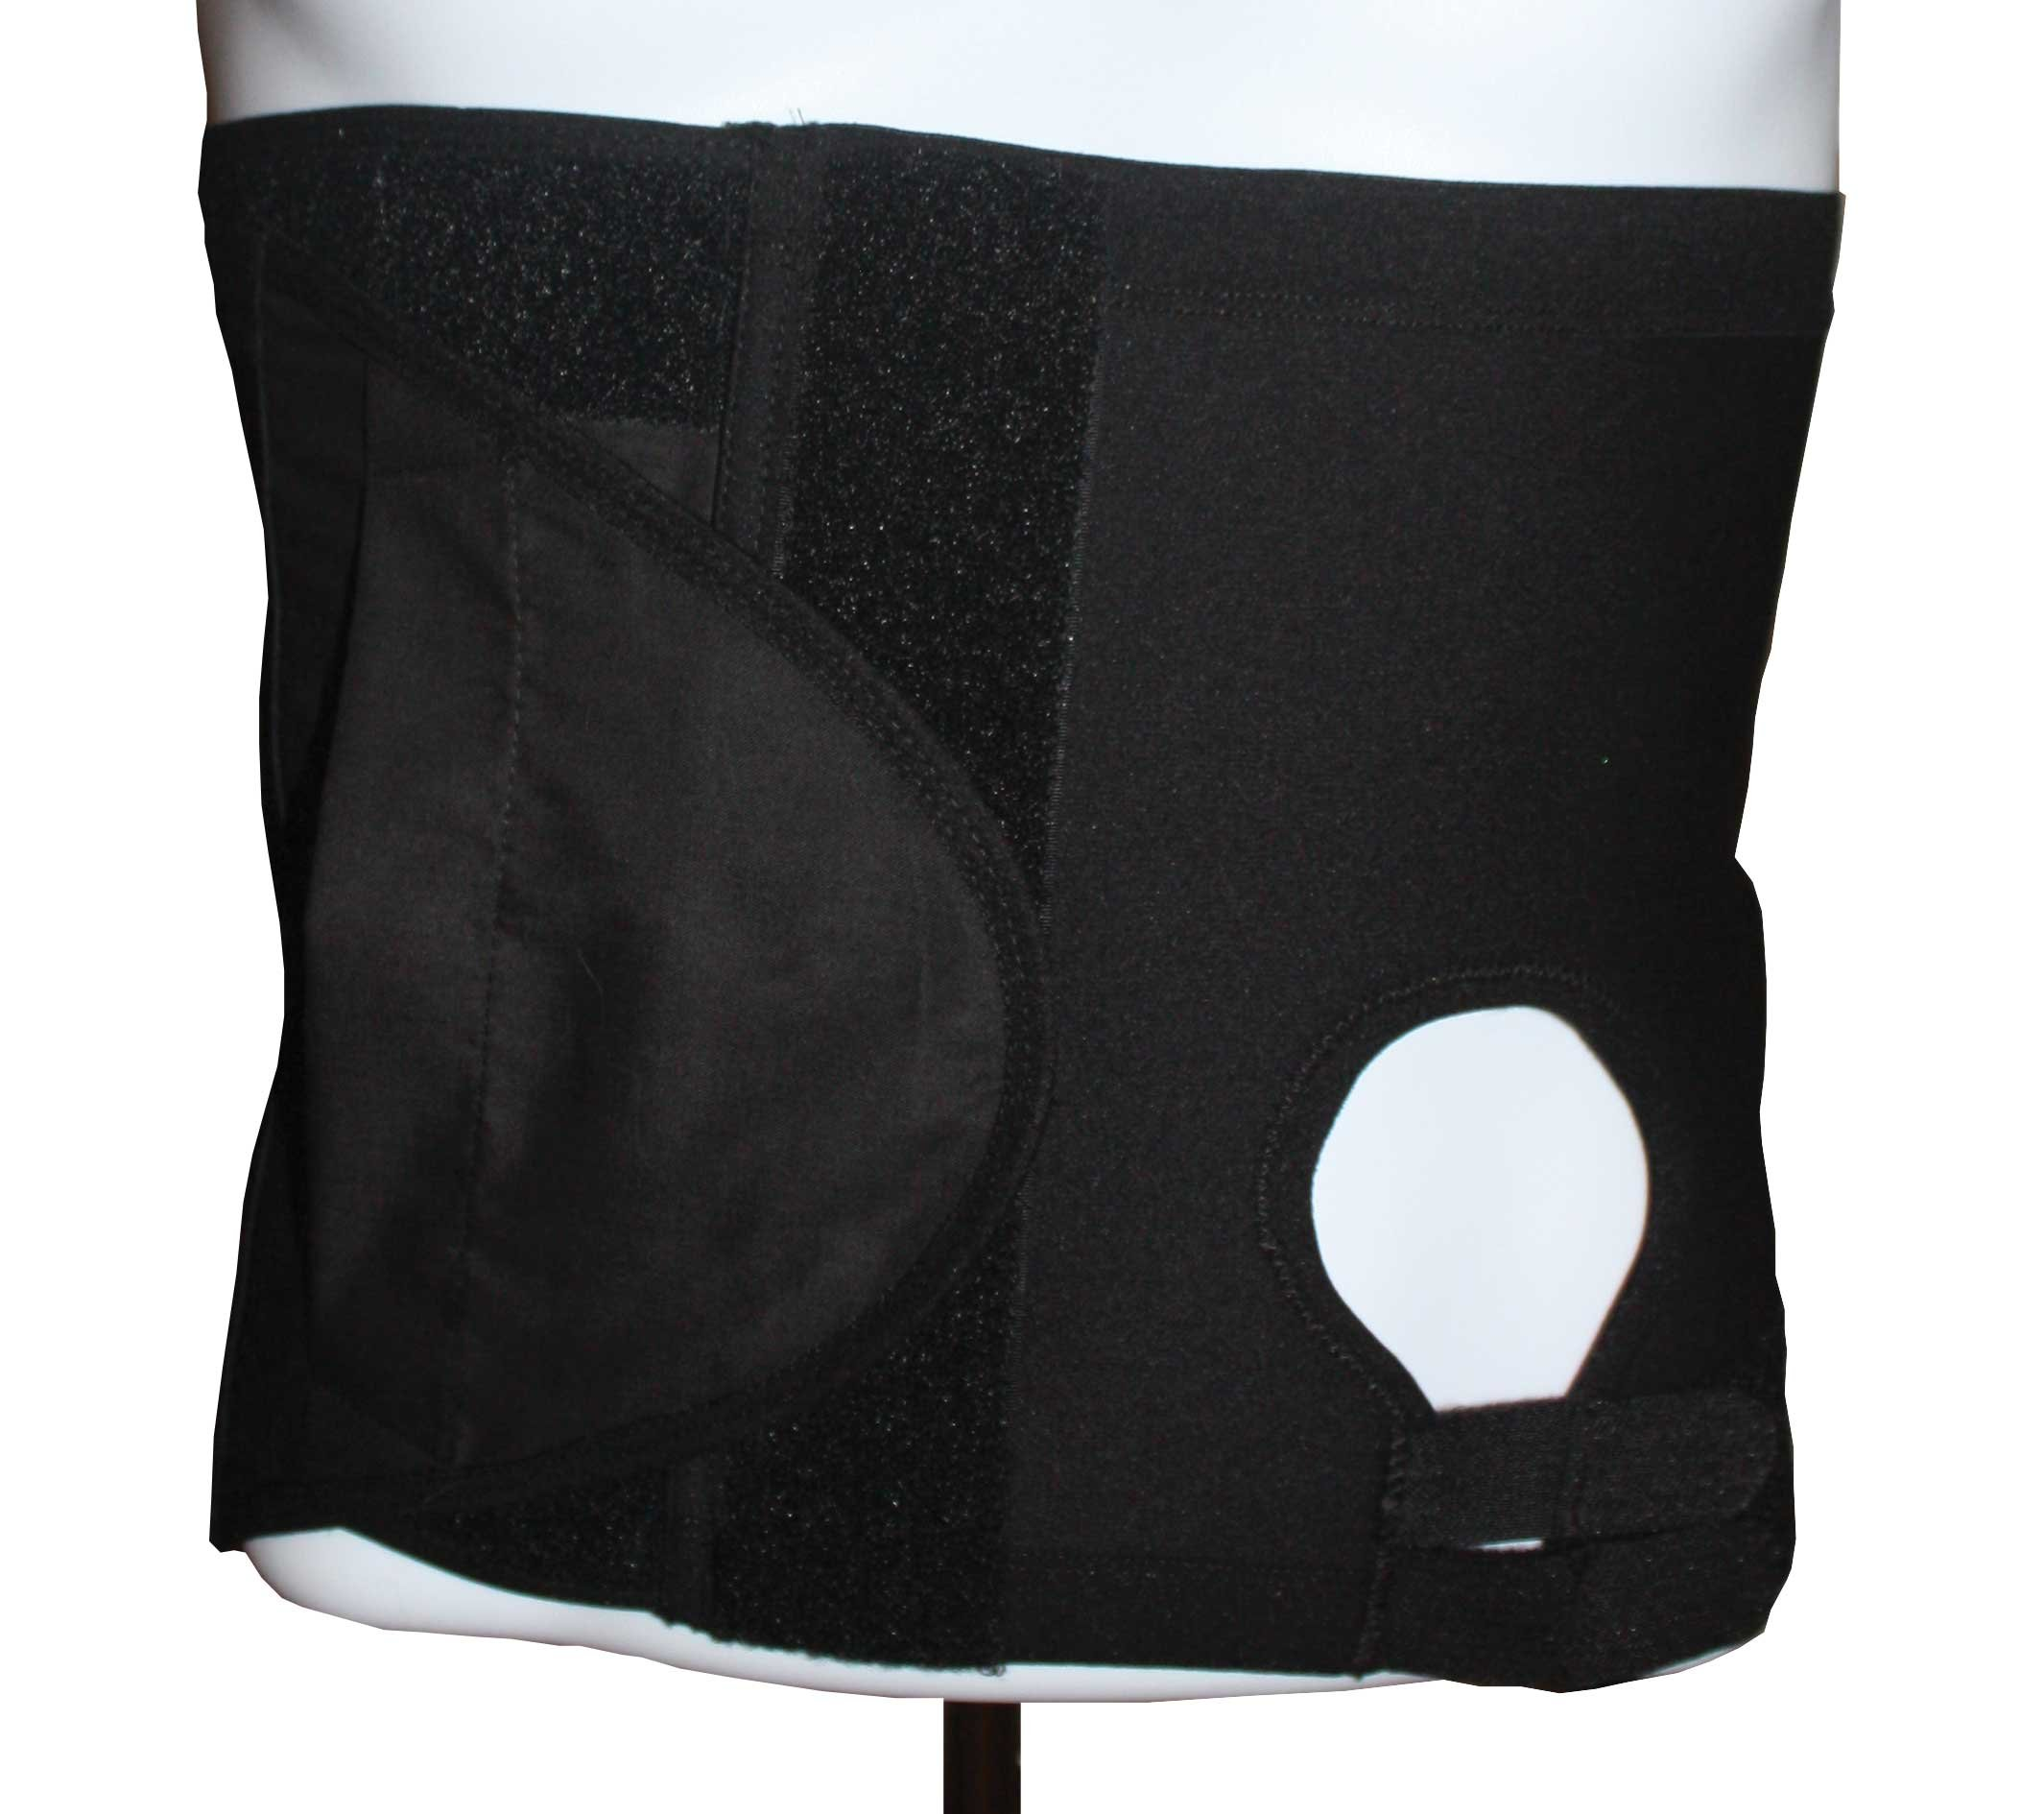 Safe n' Simple Left Hernia Support Belt with Adjustable Hole, 26cm, Black, X-Small